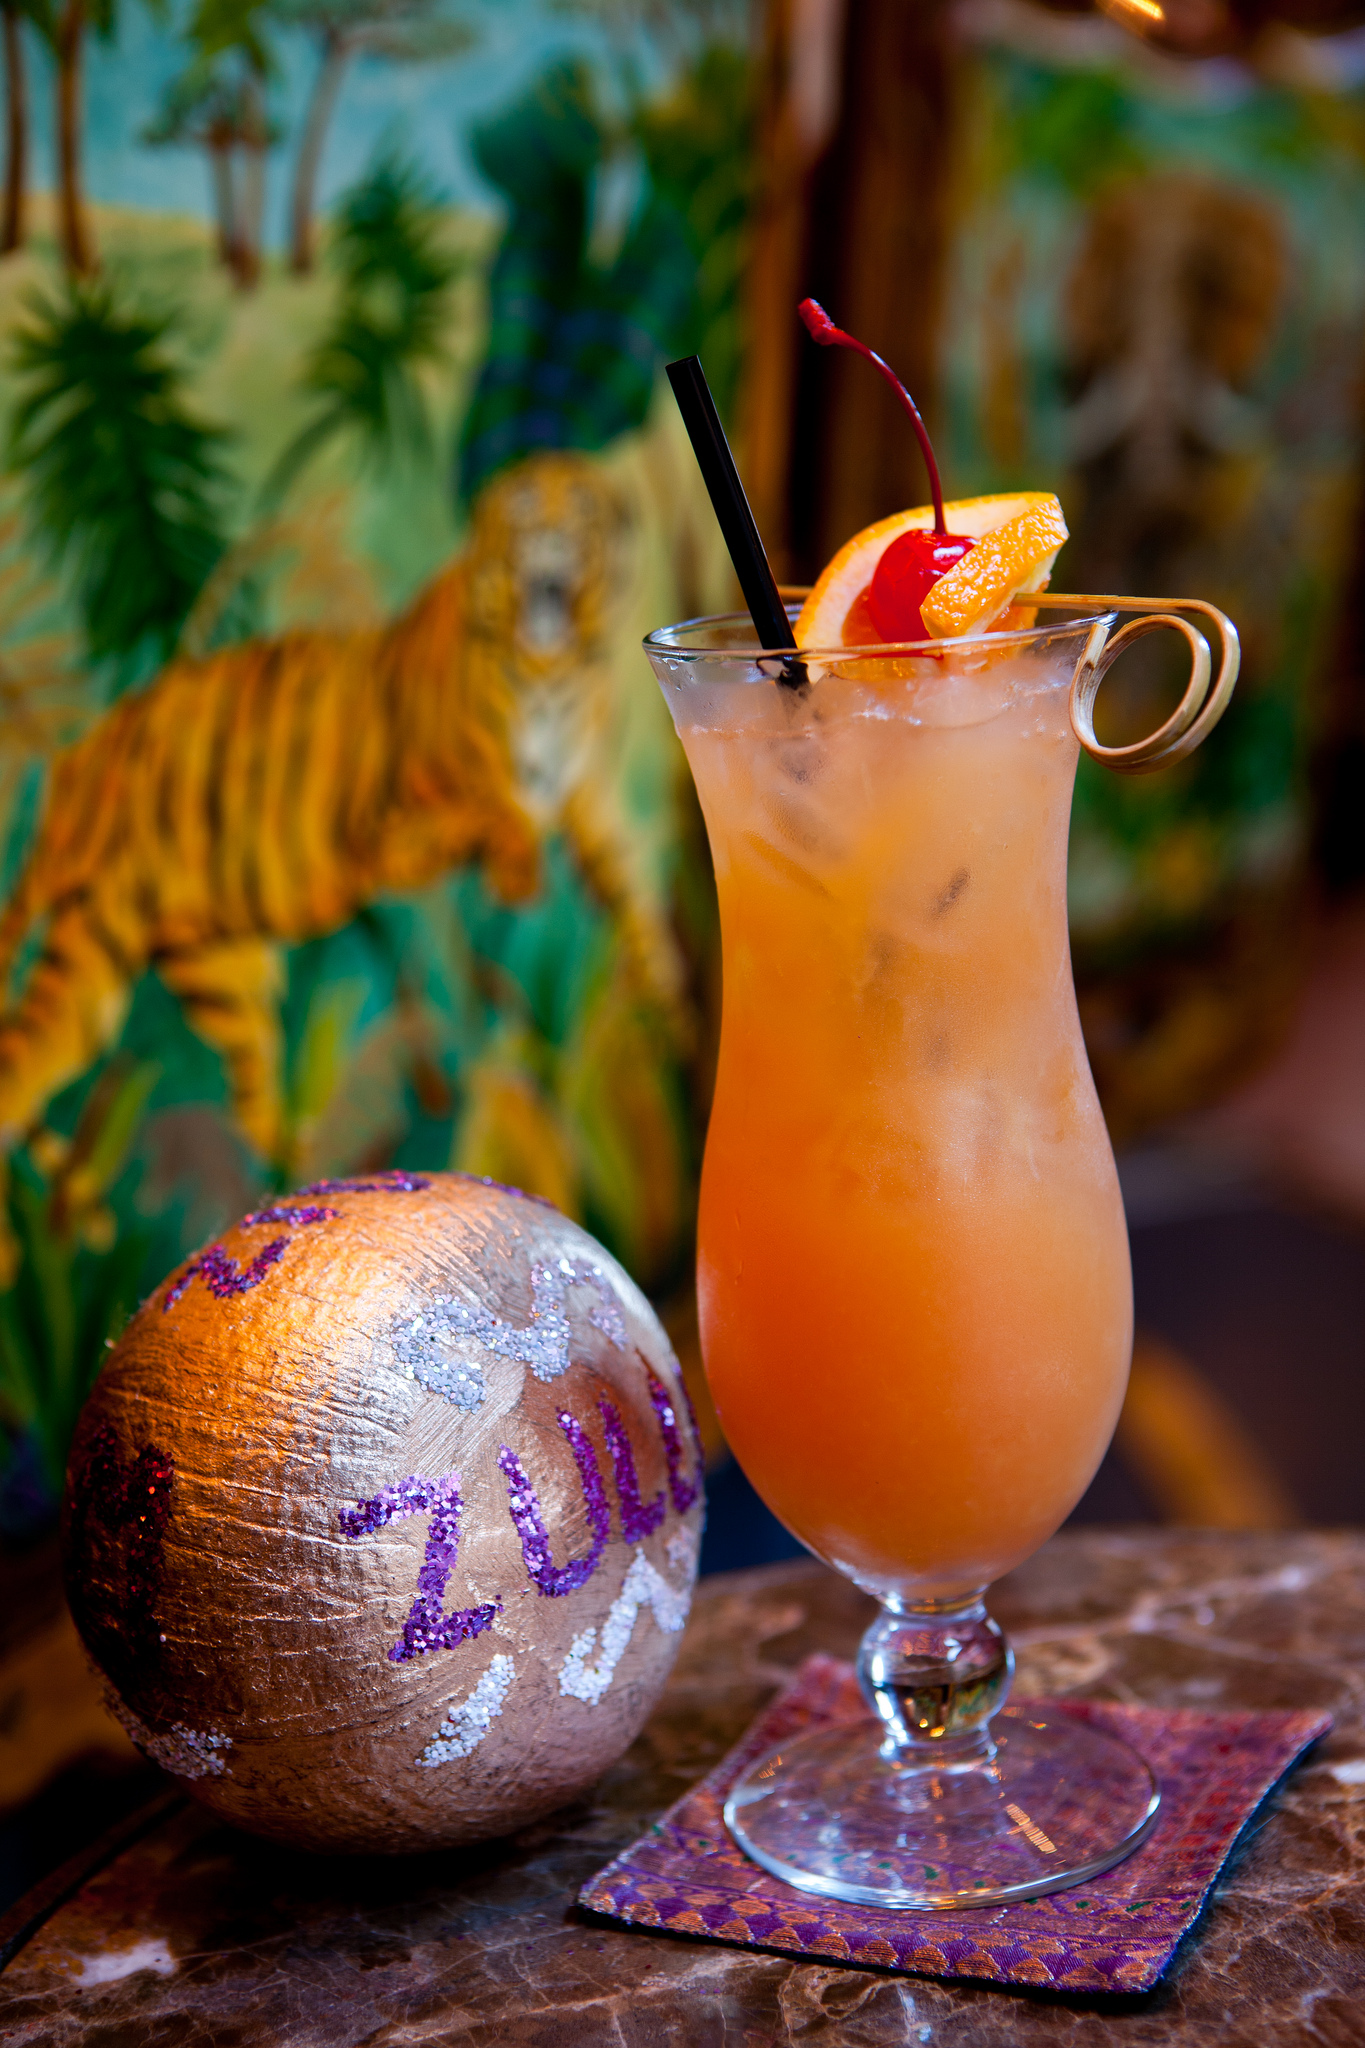 This tropical coconut punch is inspired by the world-famous Zulu Social Aid & Pleasure Club, who parade every Mardi Gras.